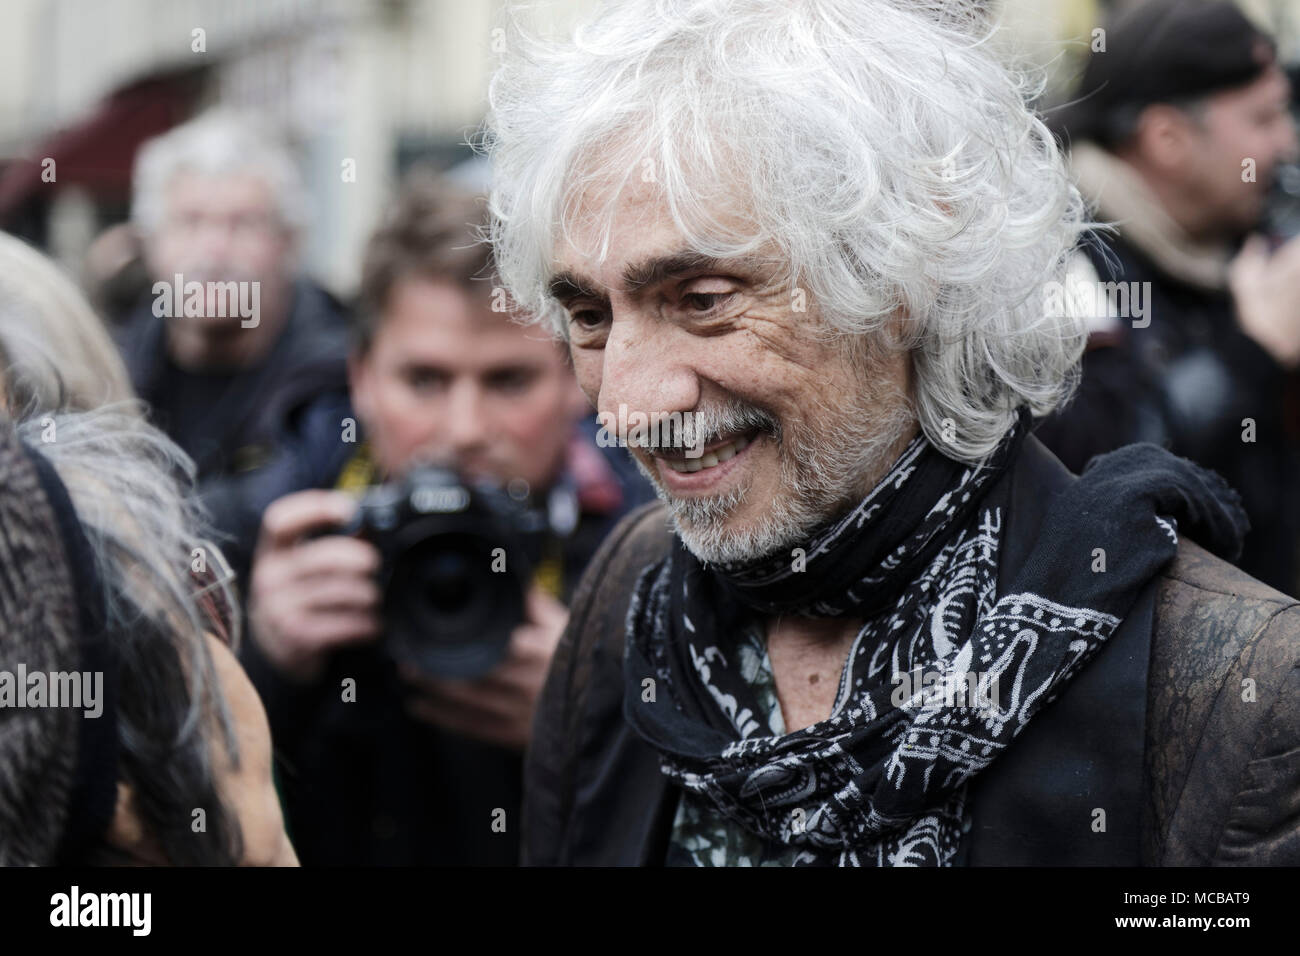 Paris, France. 12th Apr, 2018. Louis Bertignac at the Jacques Higelin funeral at the Cirque d'Hiver on April 12, 2018 in Paris, France. - Stock Image